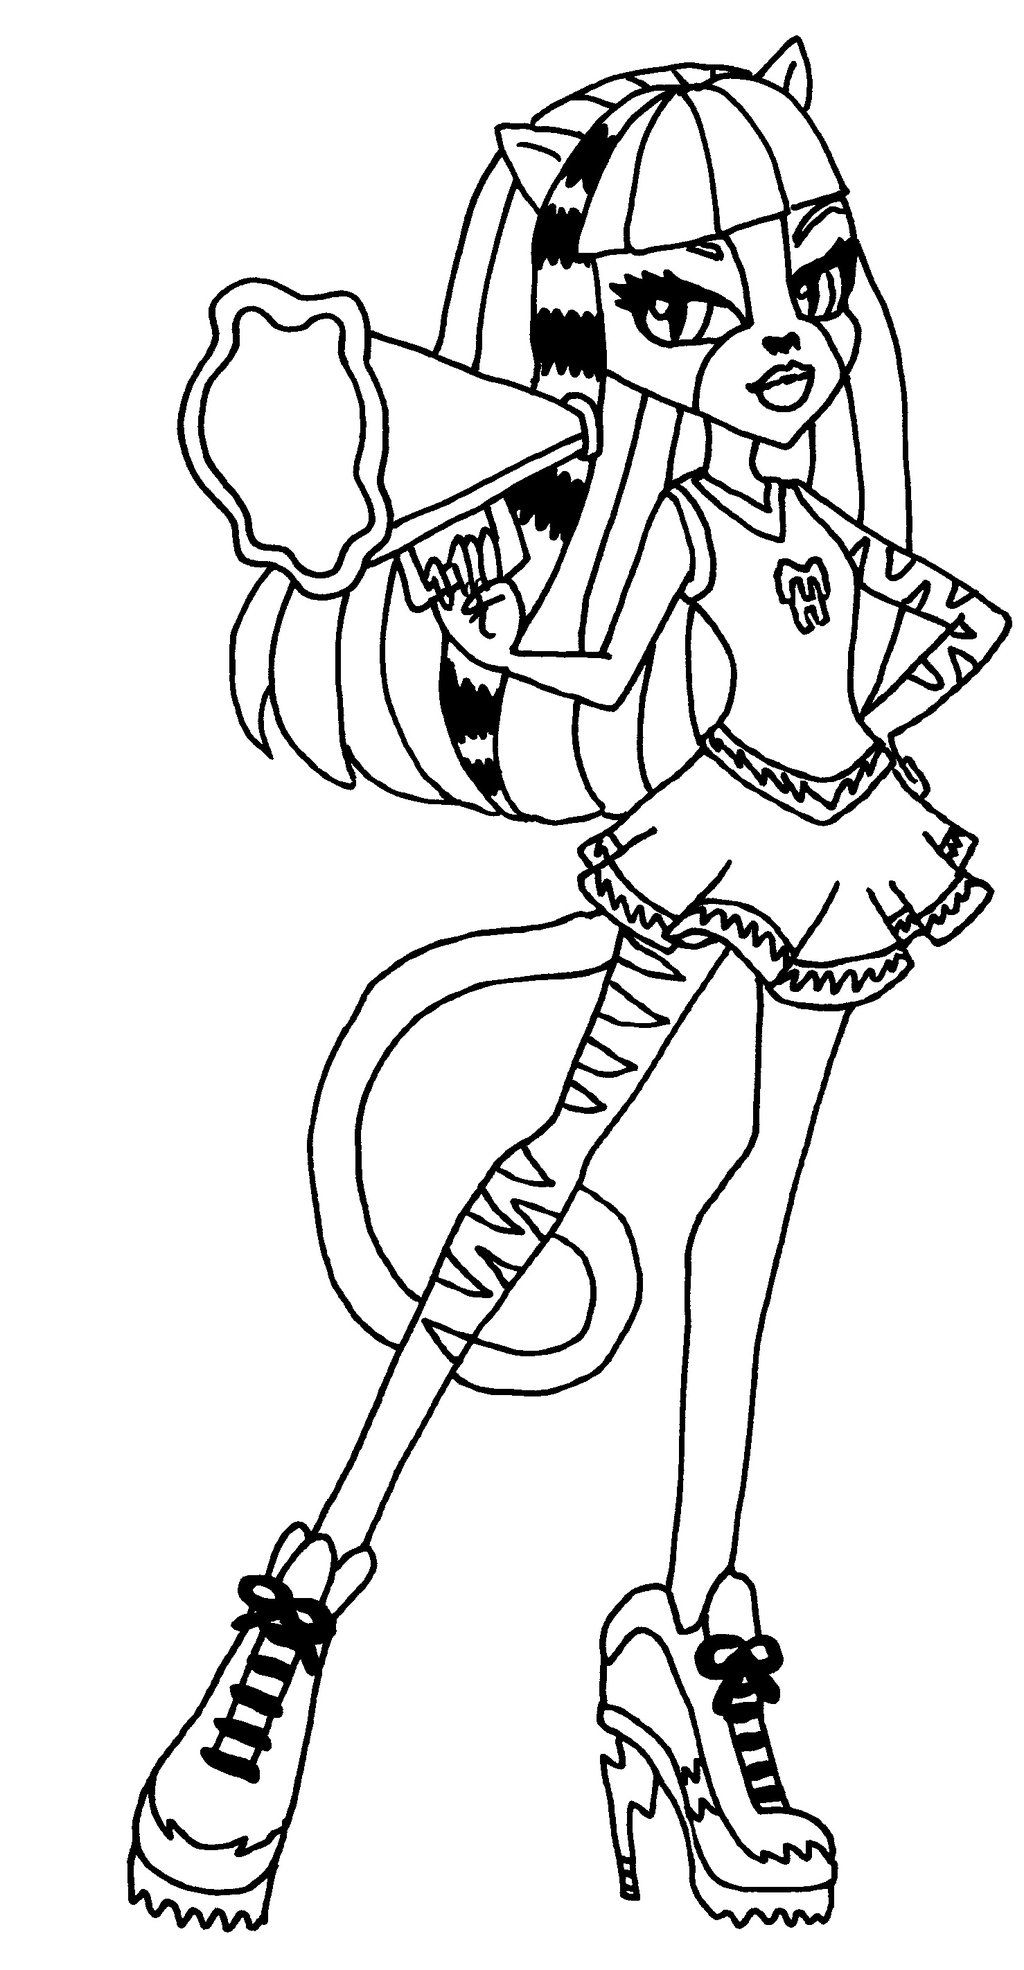 monster high black and white coloring pages frankie stein free coloring pages google search black monster high white and pages coloring